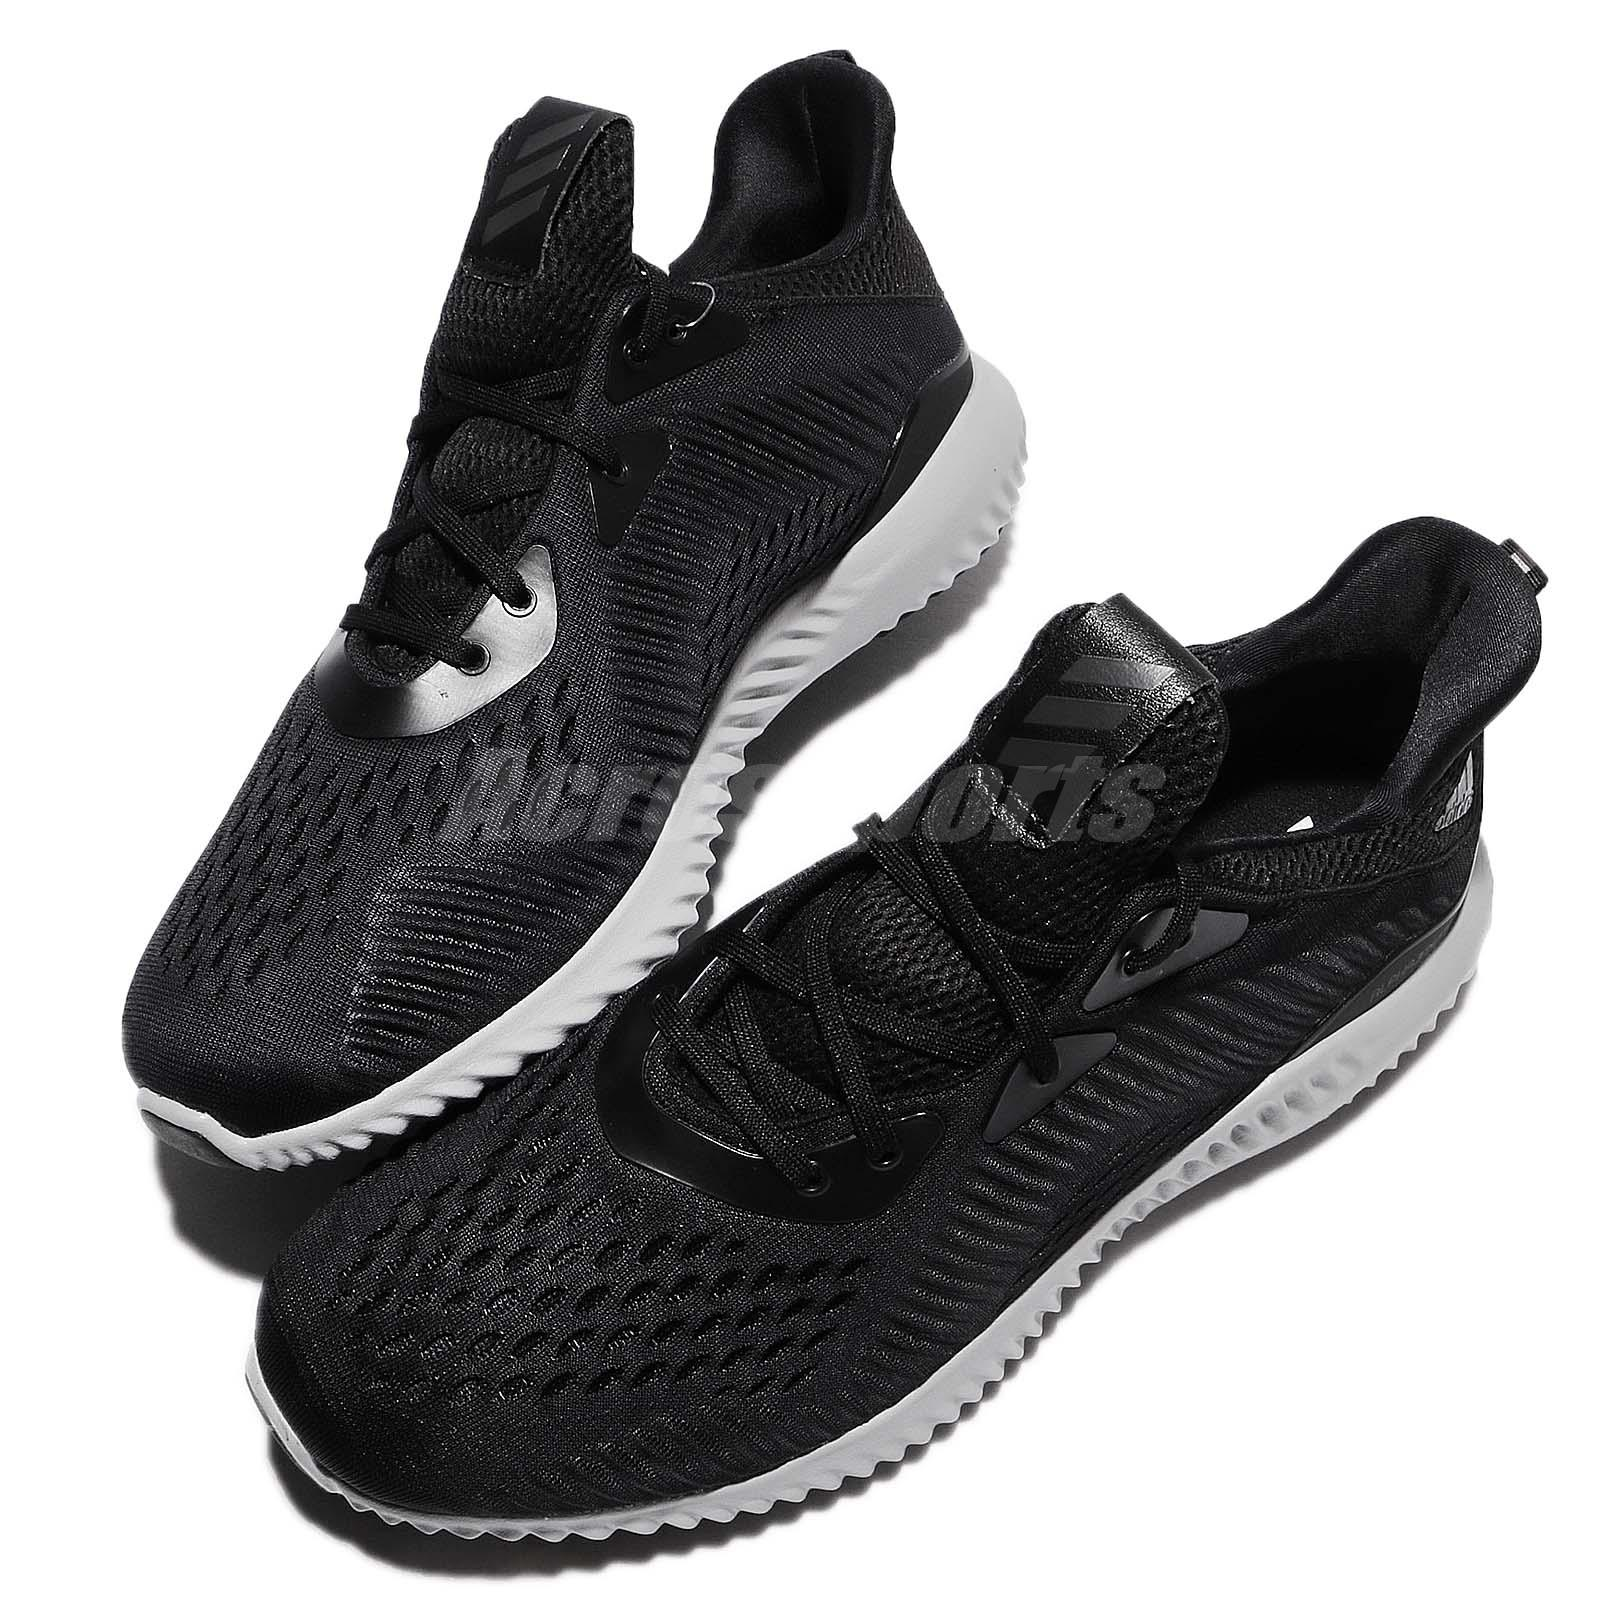 9e83613e3dfe9 adidas Alphabounce EM M R Core Black Grey Men Running Shoes Sneakers ...